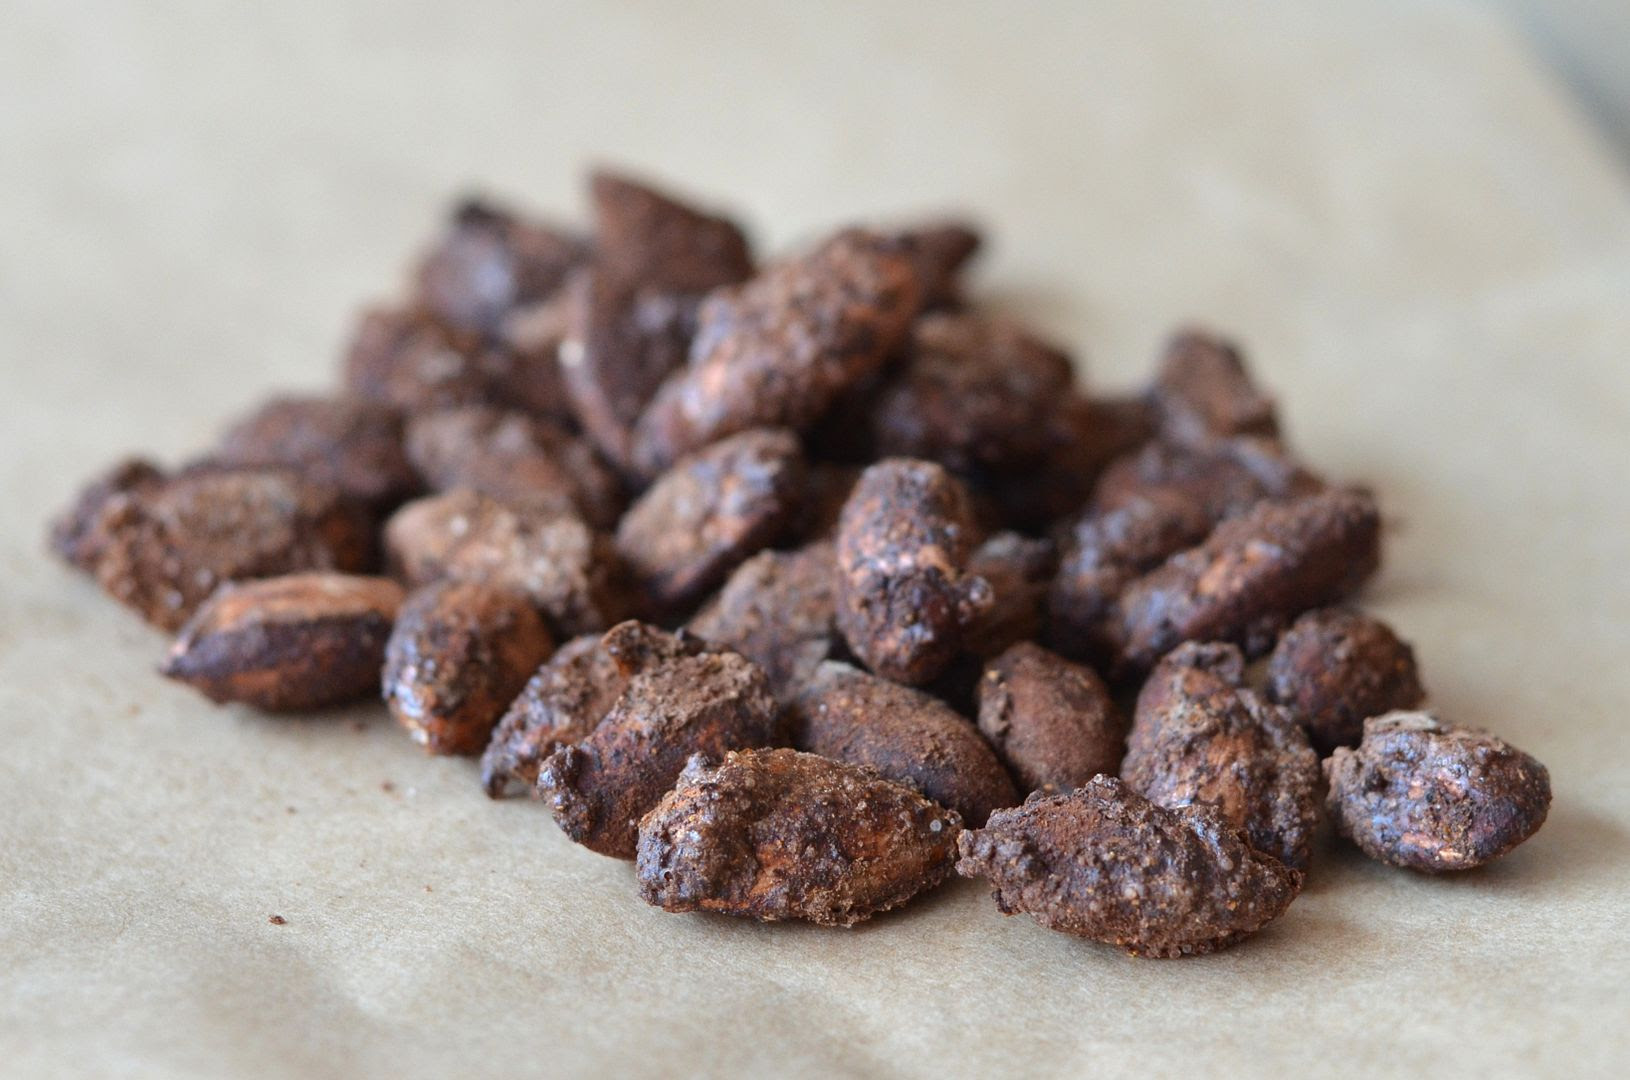 Chilli Chocolate Almonds